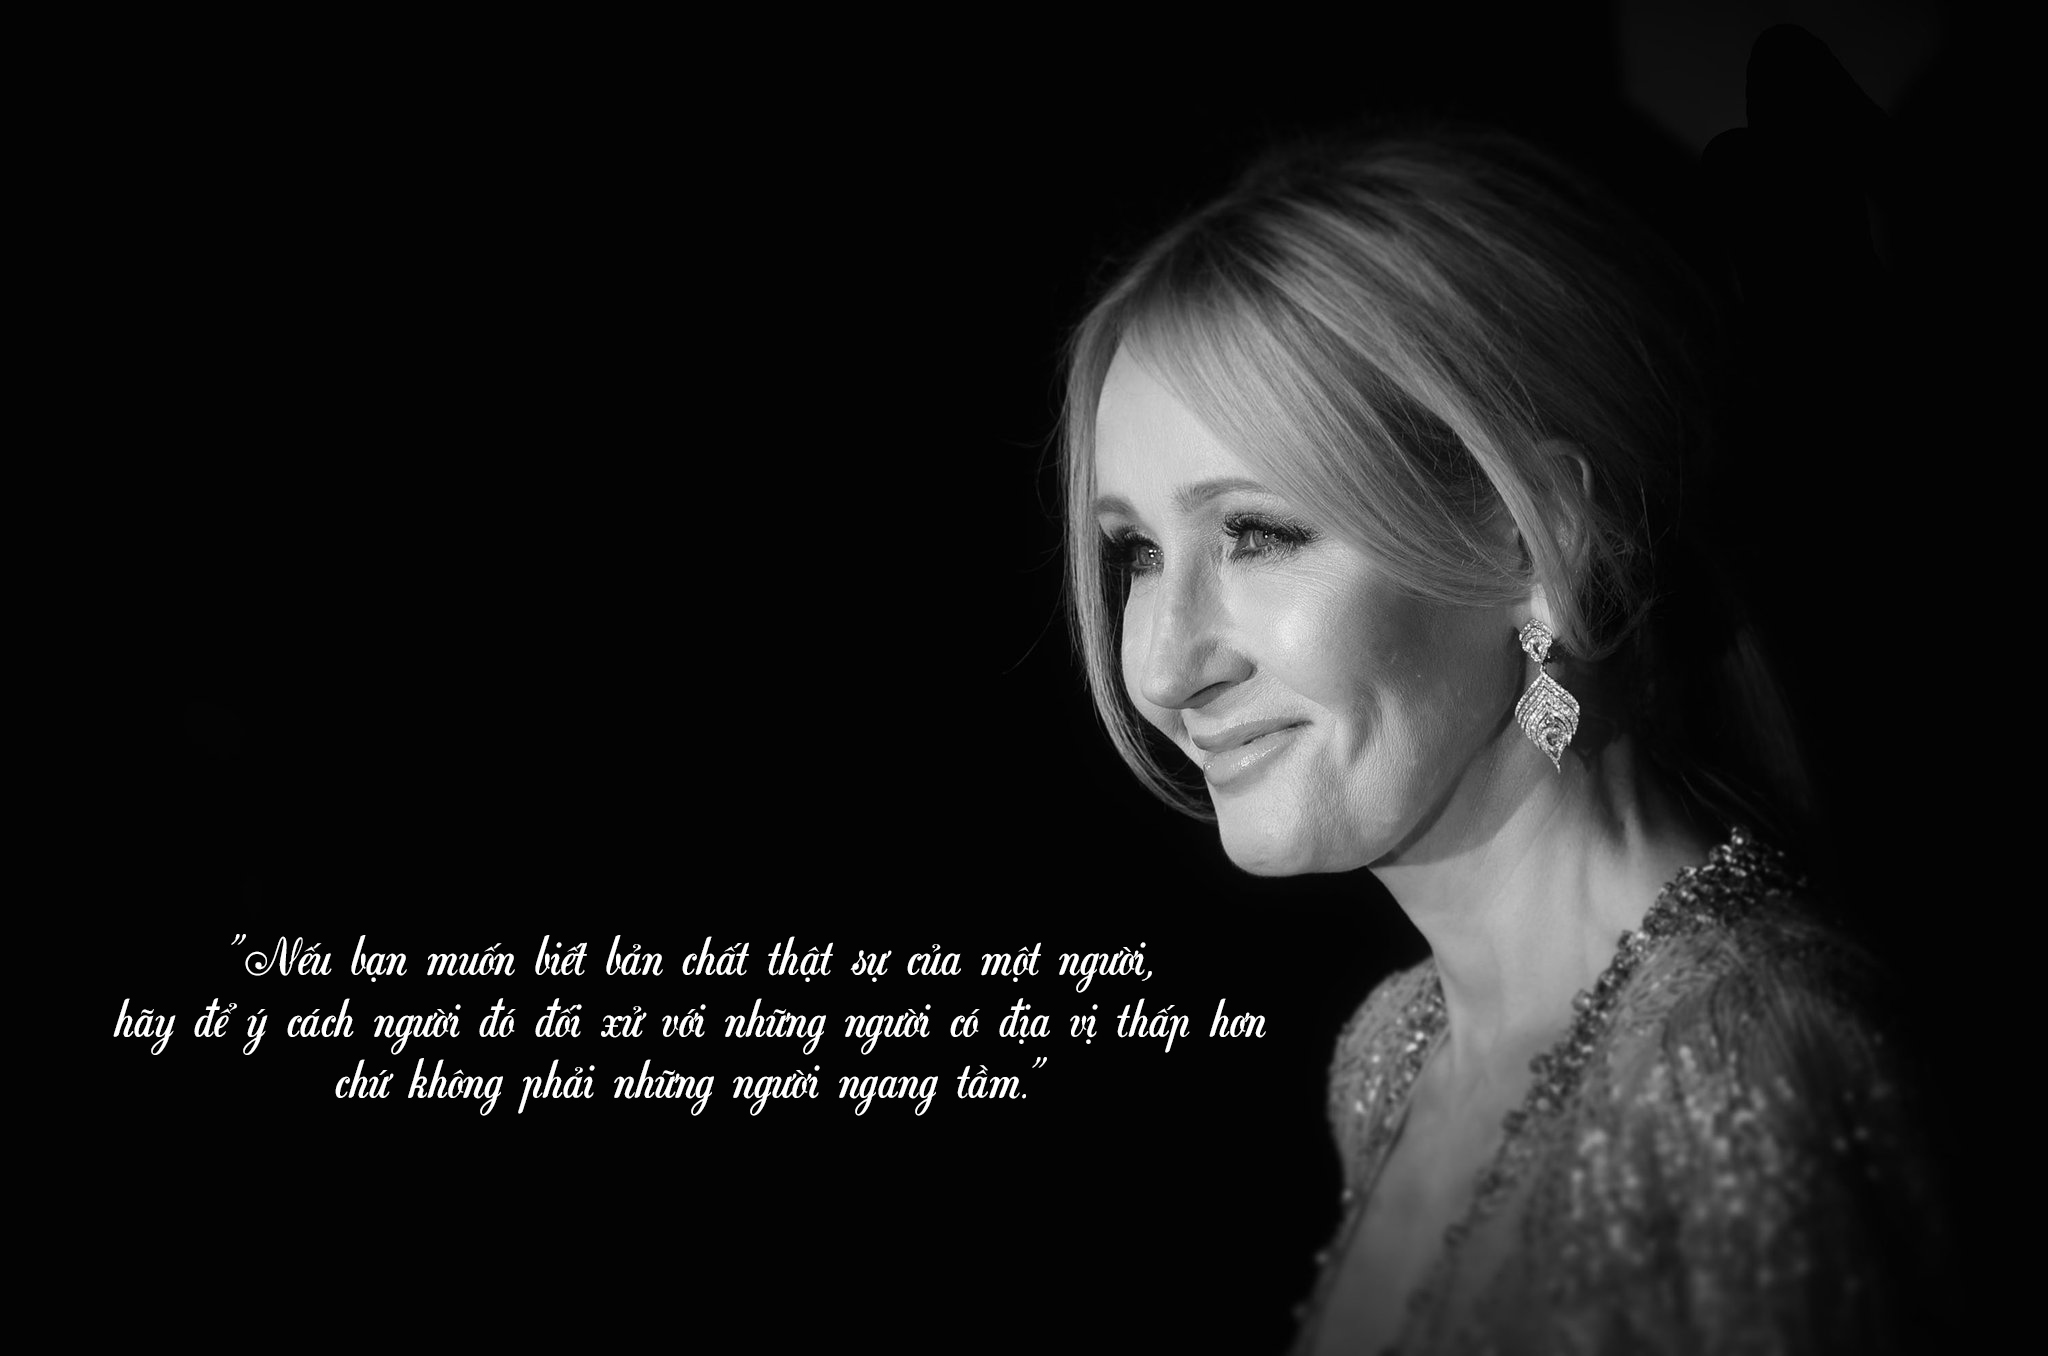 JK-Rowling-harry-potter-hinh-anh 9